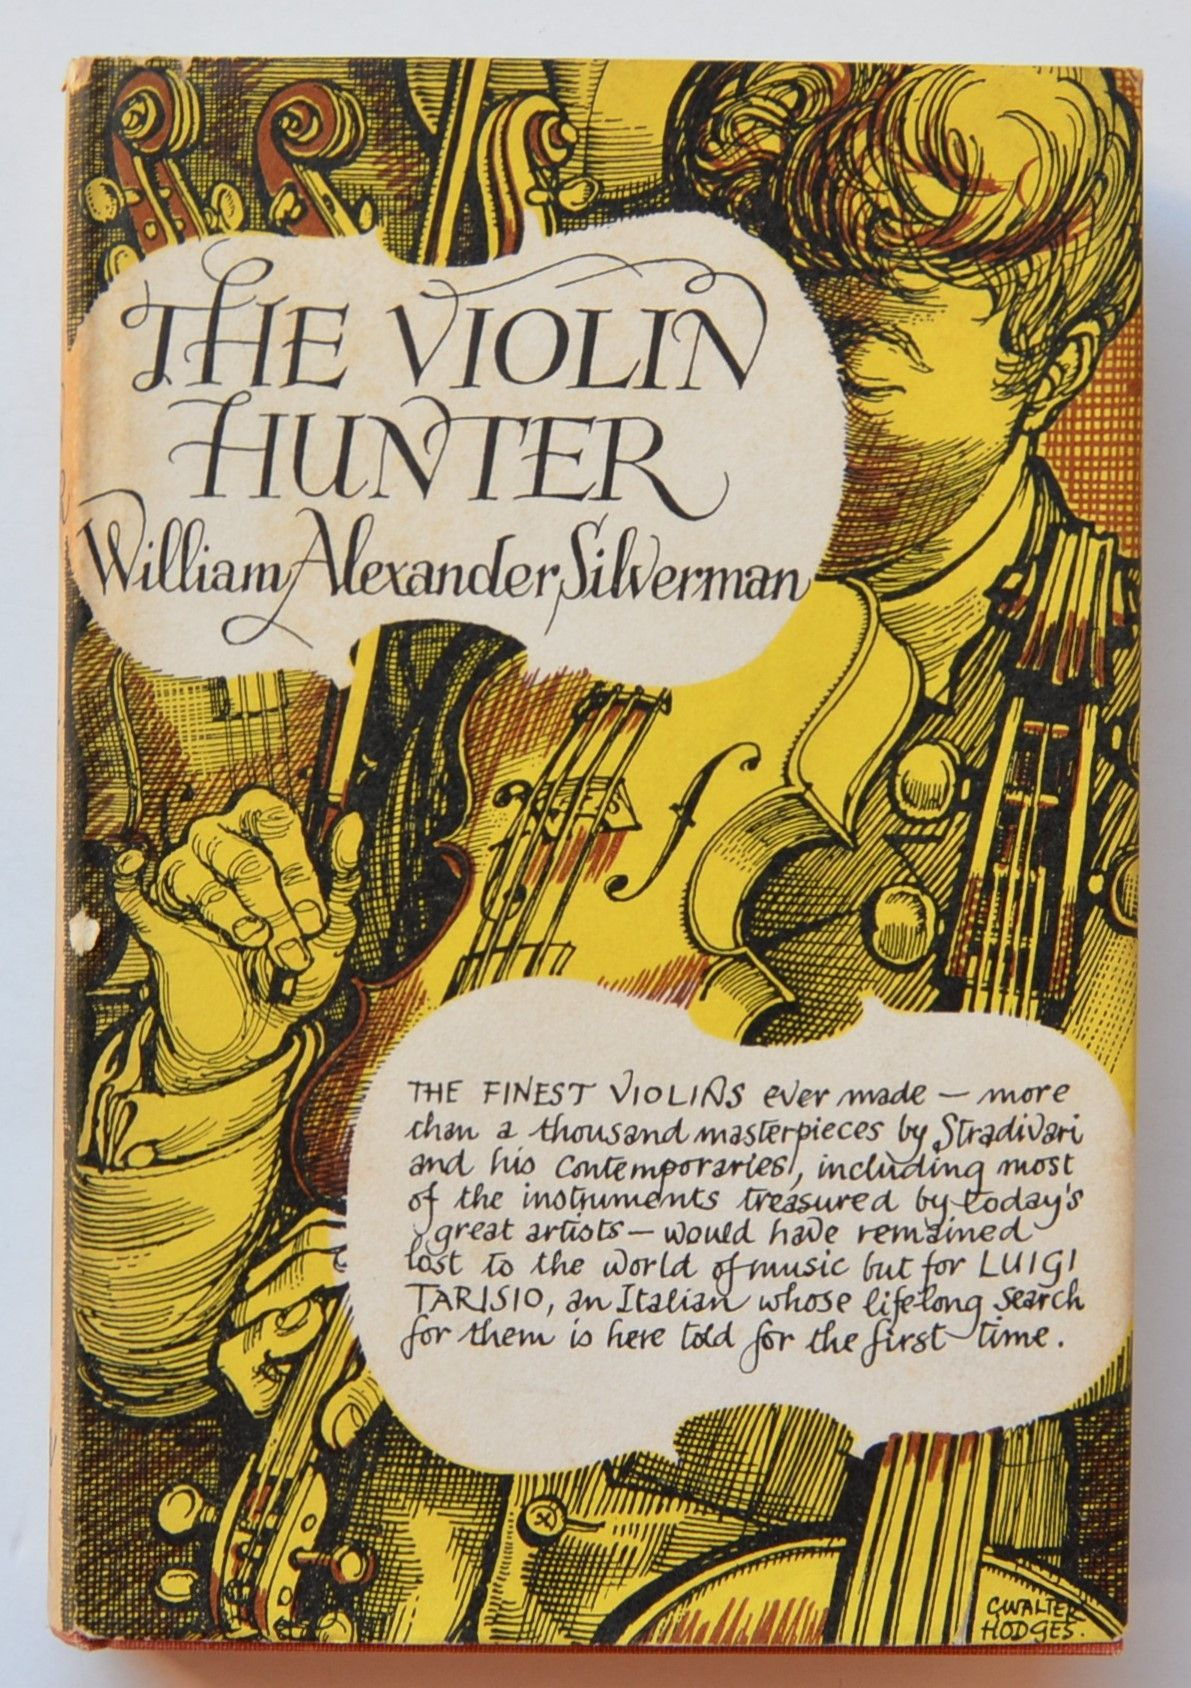 The Violin Hunter by William Alexander Silverman ; with a foreword by Josef Gingold. ~Luigi Tarisio~